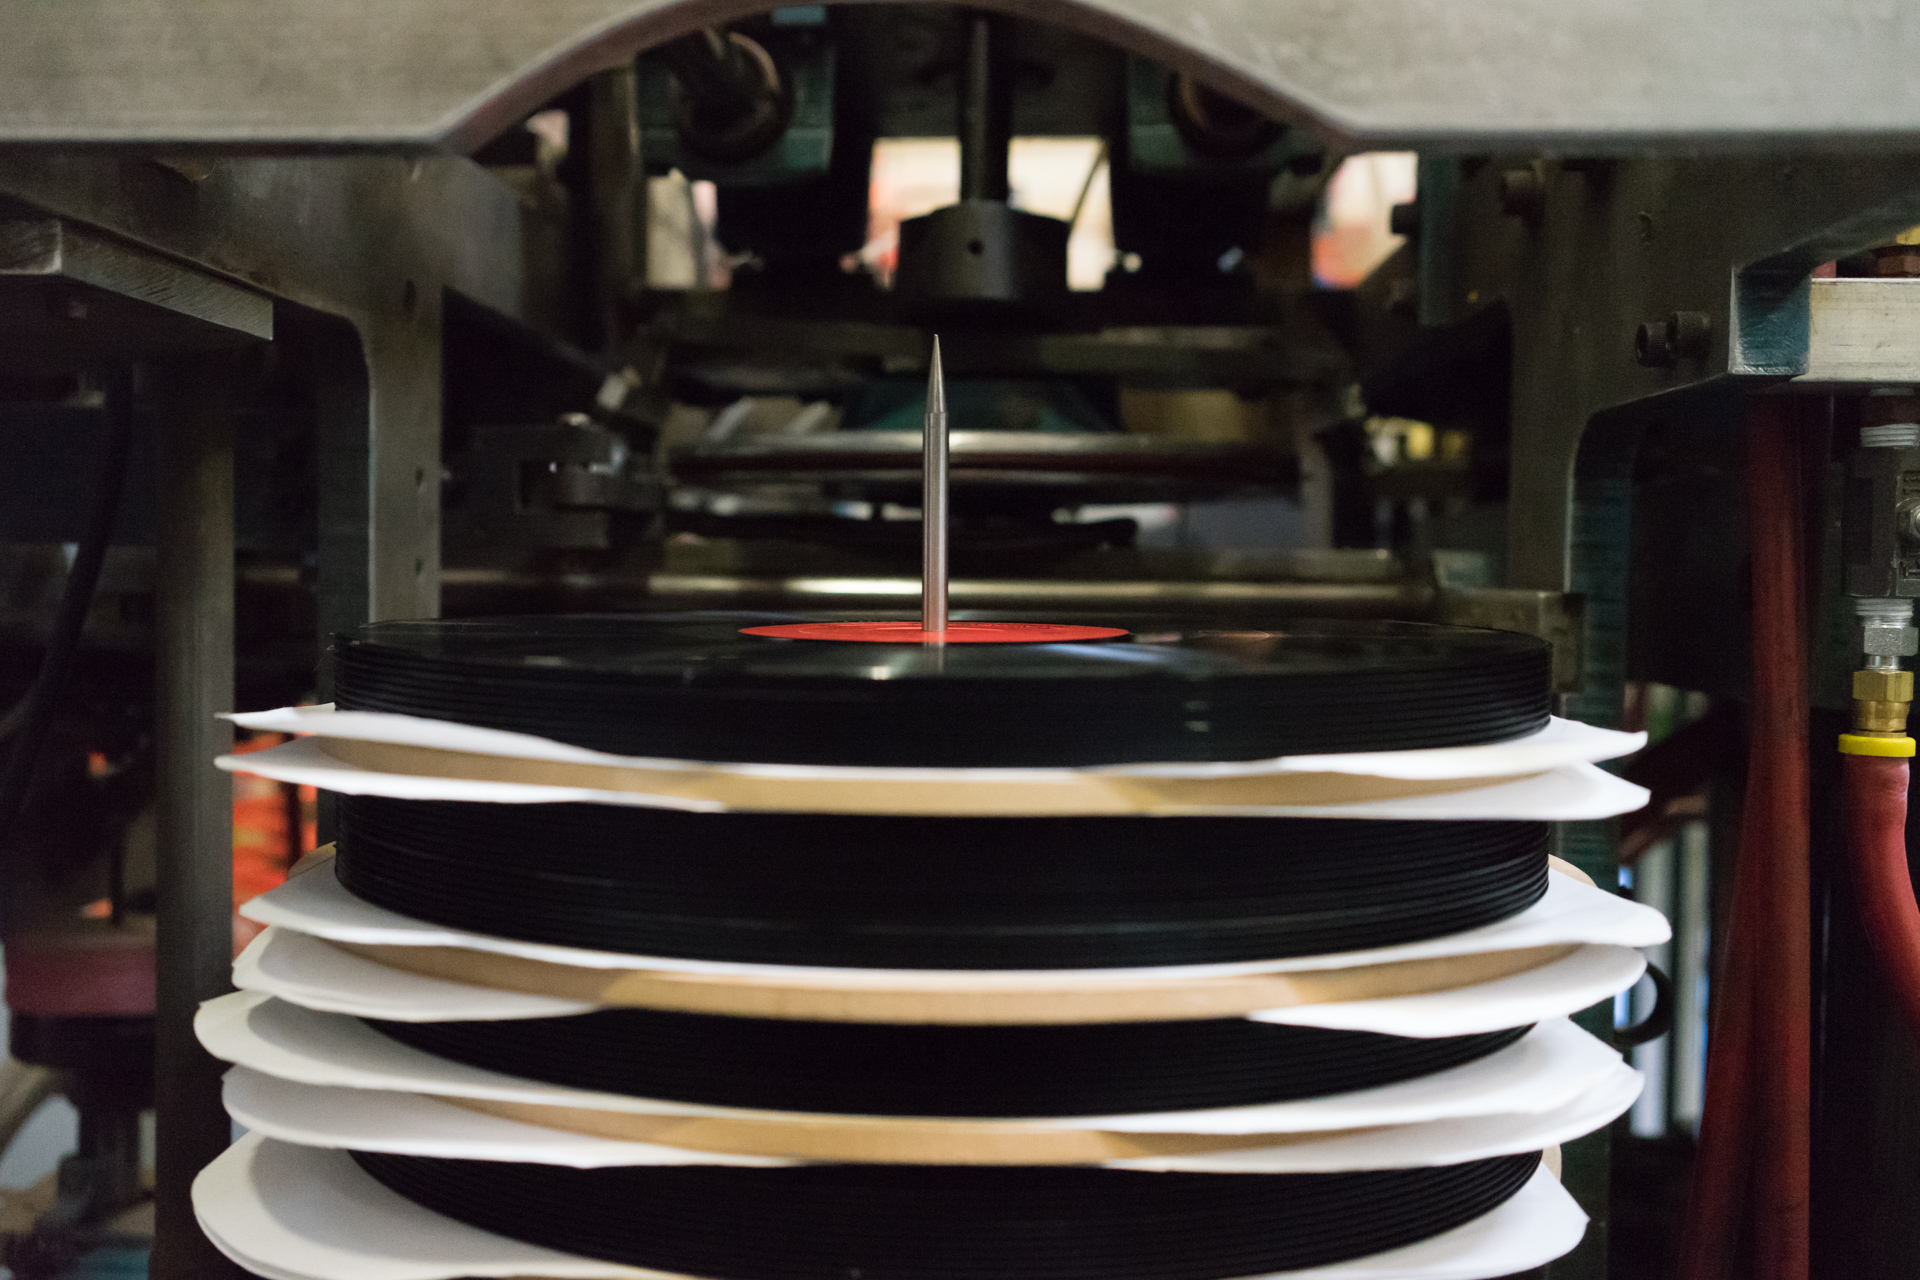 Pressed vinyl records are stacked to cool